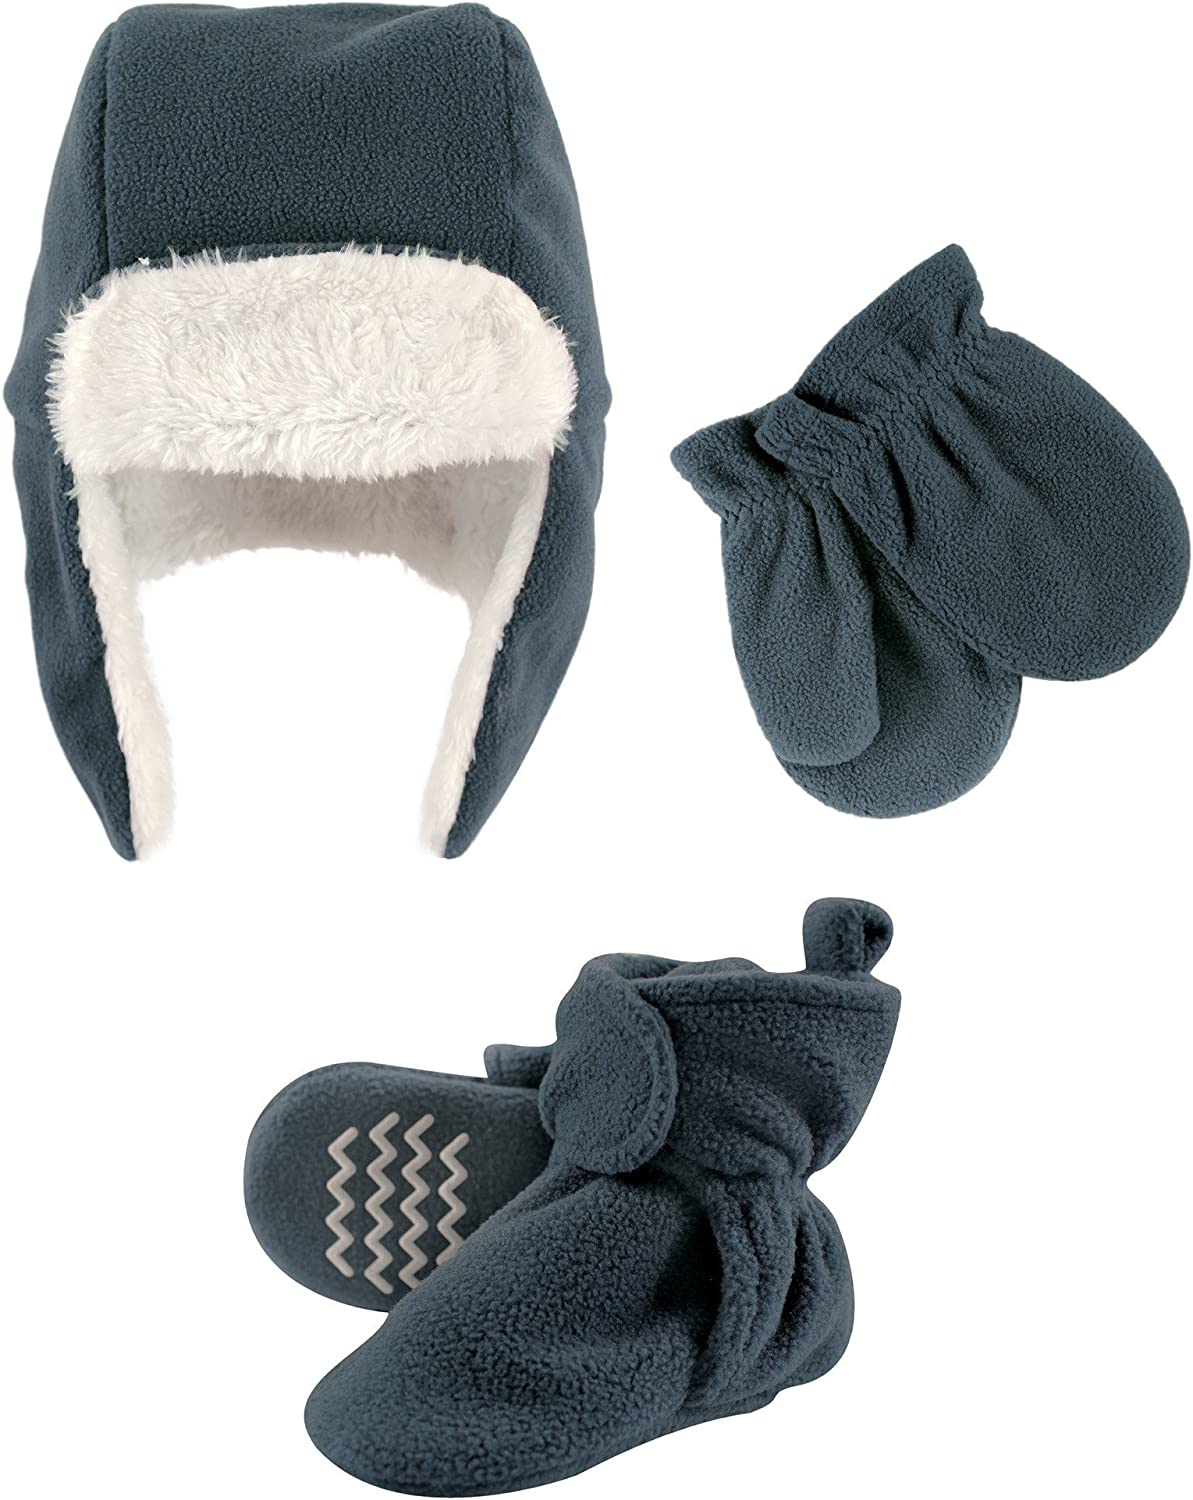 Hudson Baby Winter Hat Mittens and Booties Set